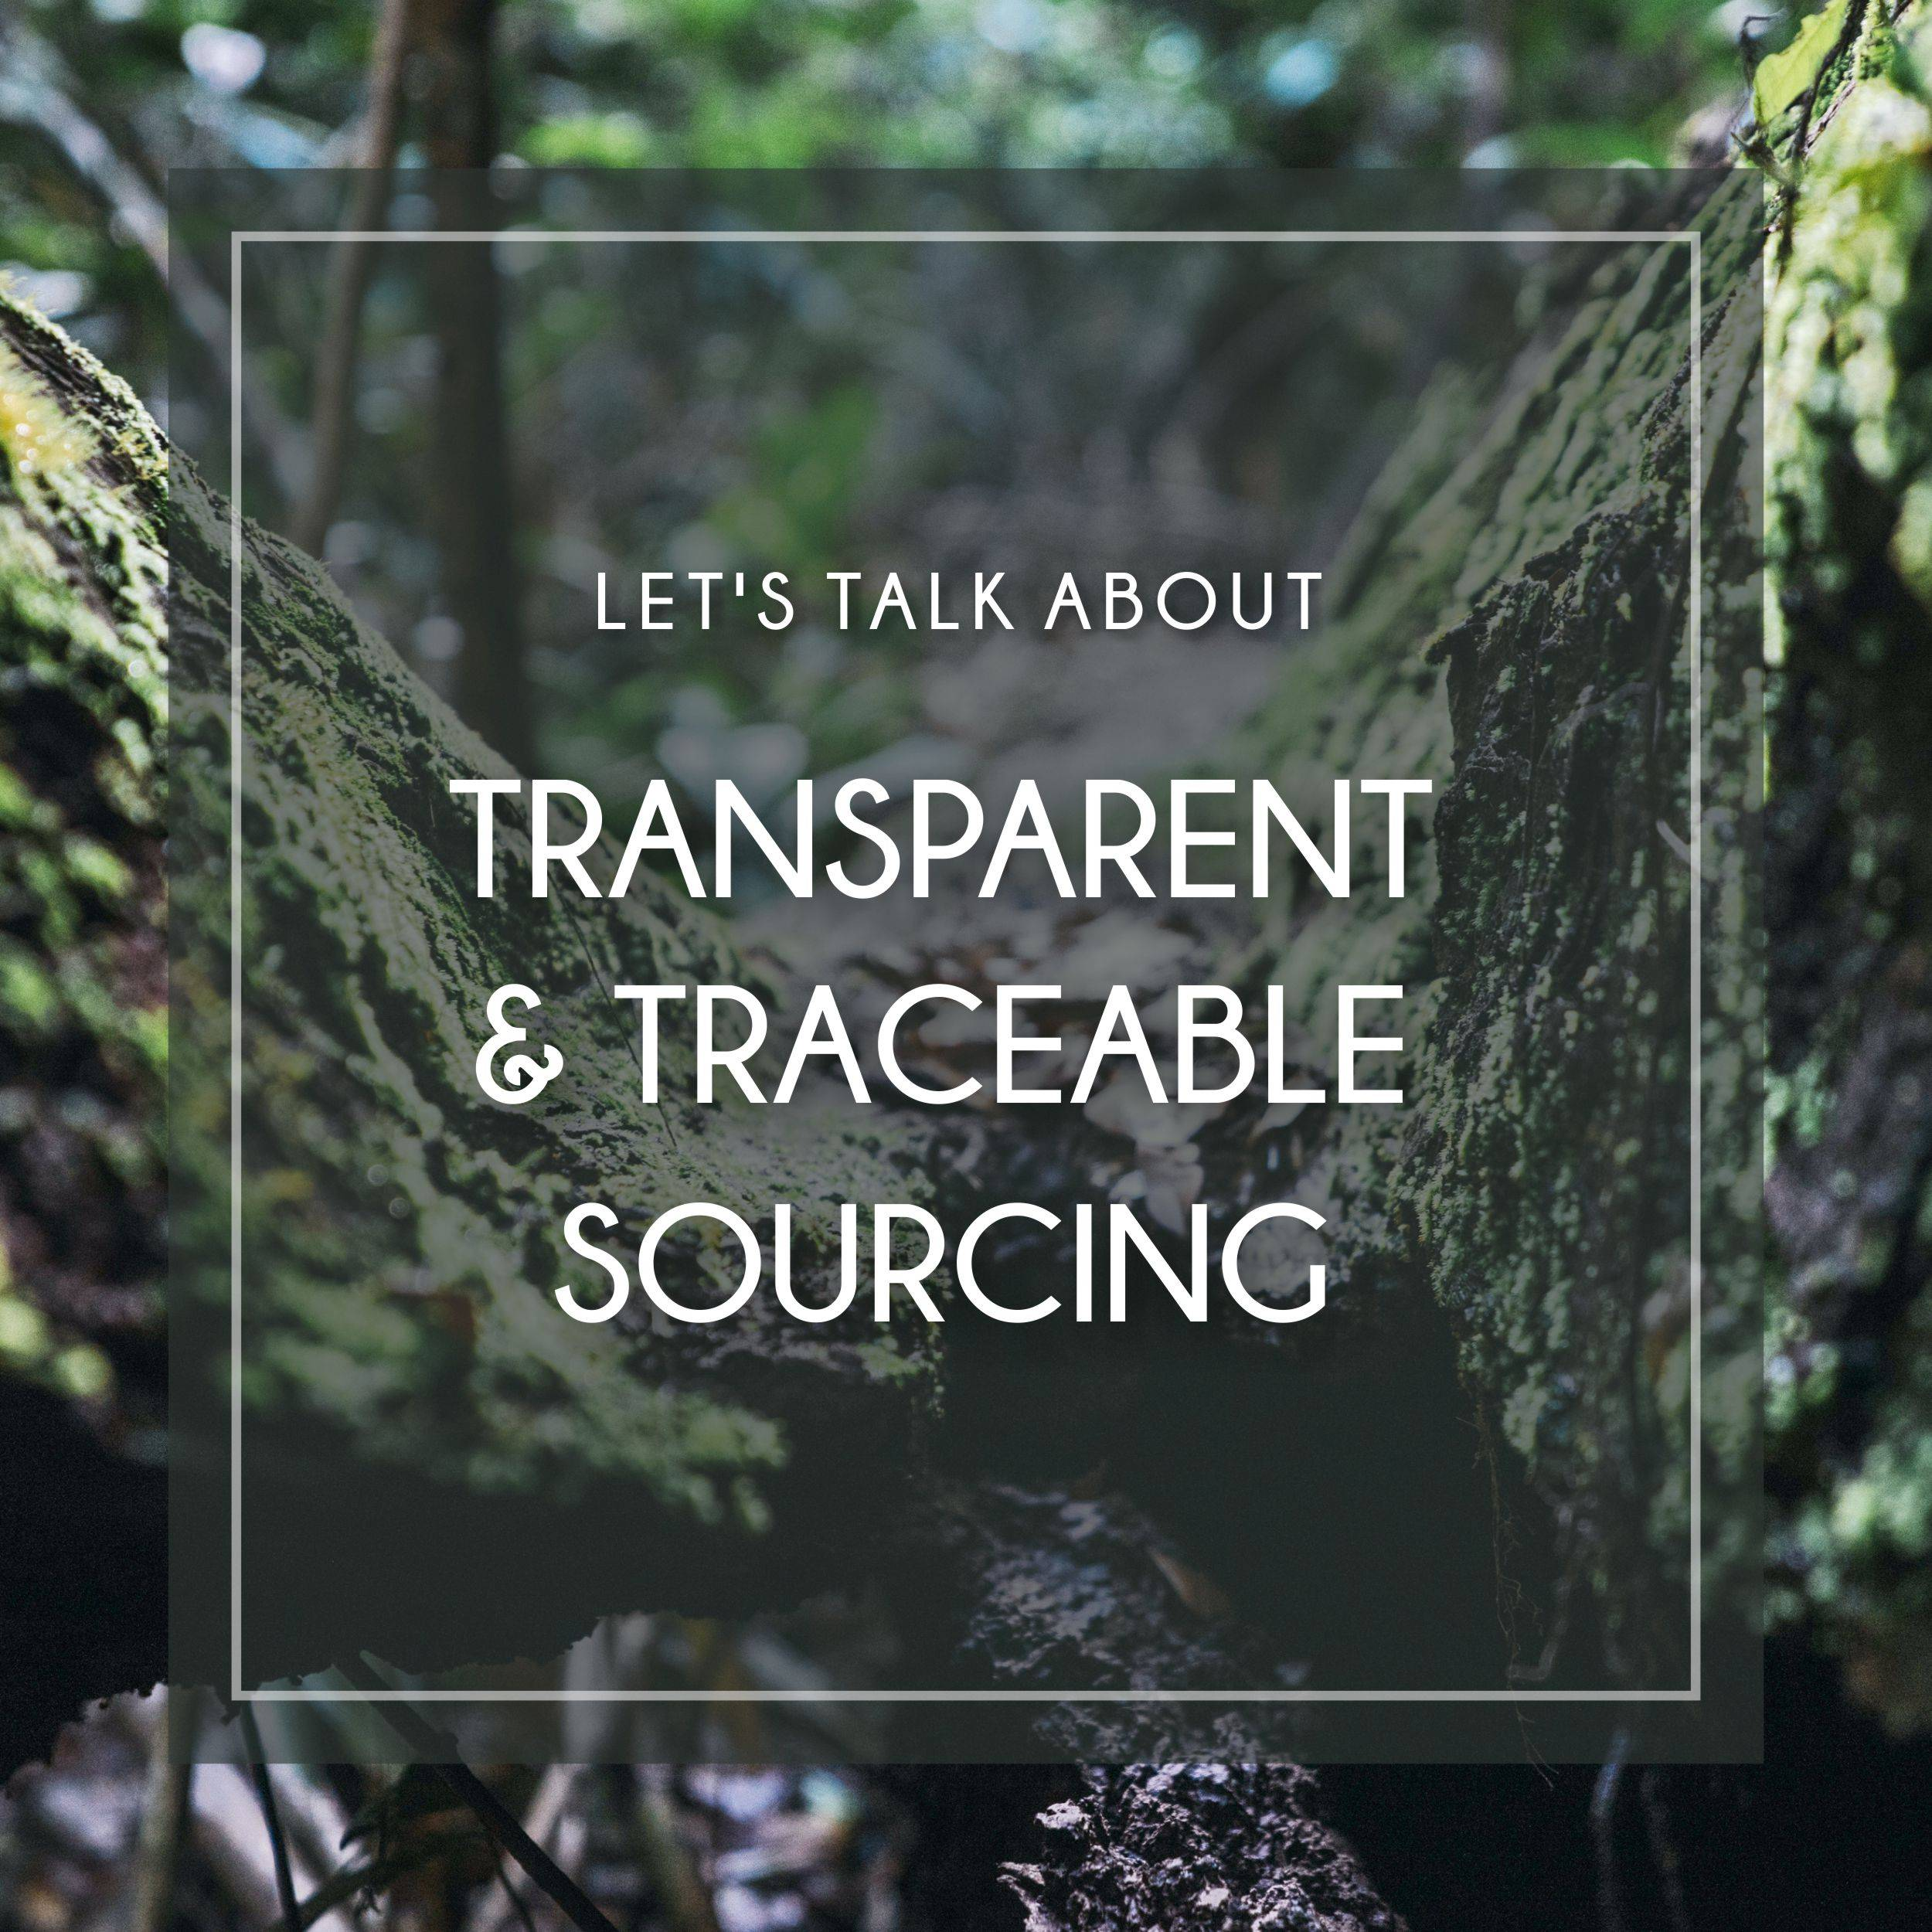 Transparent and traceable ethical gemstone sourcing.